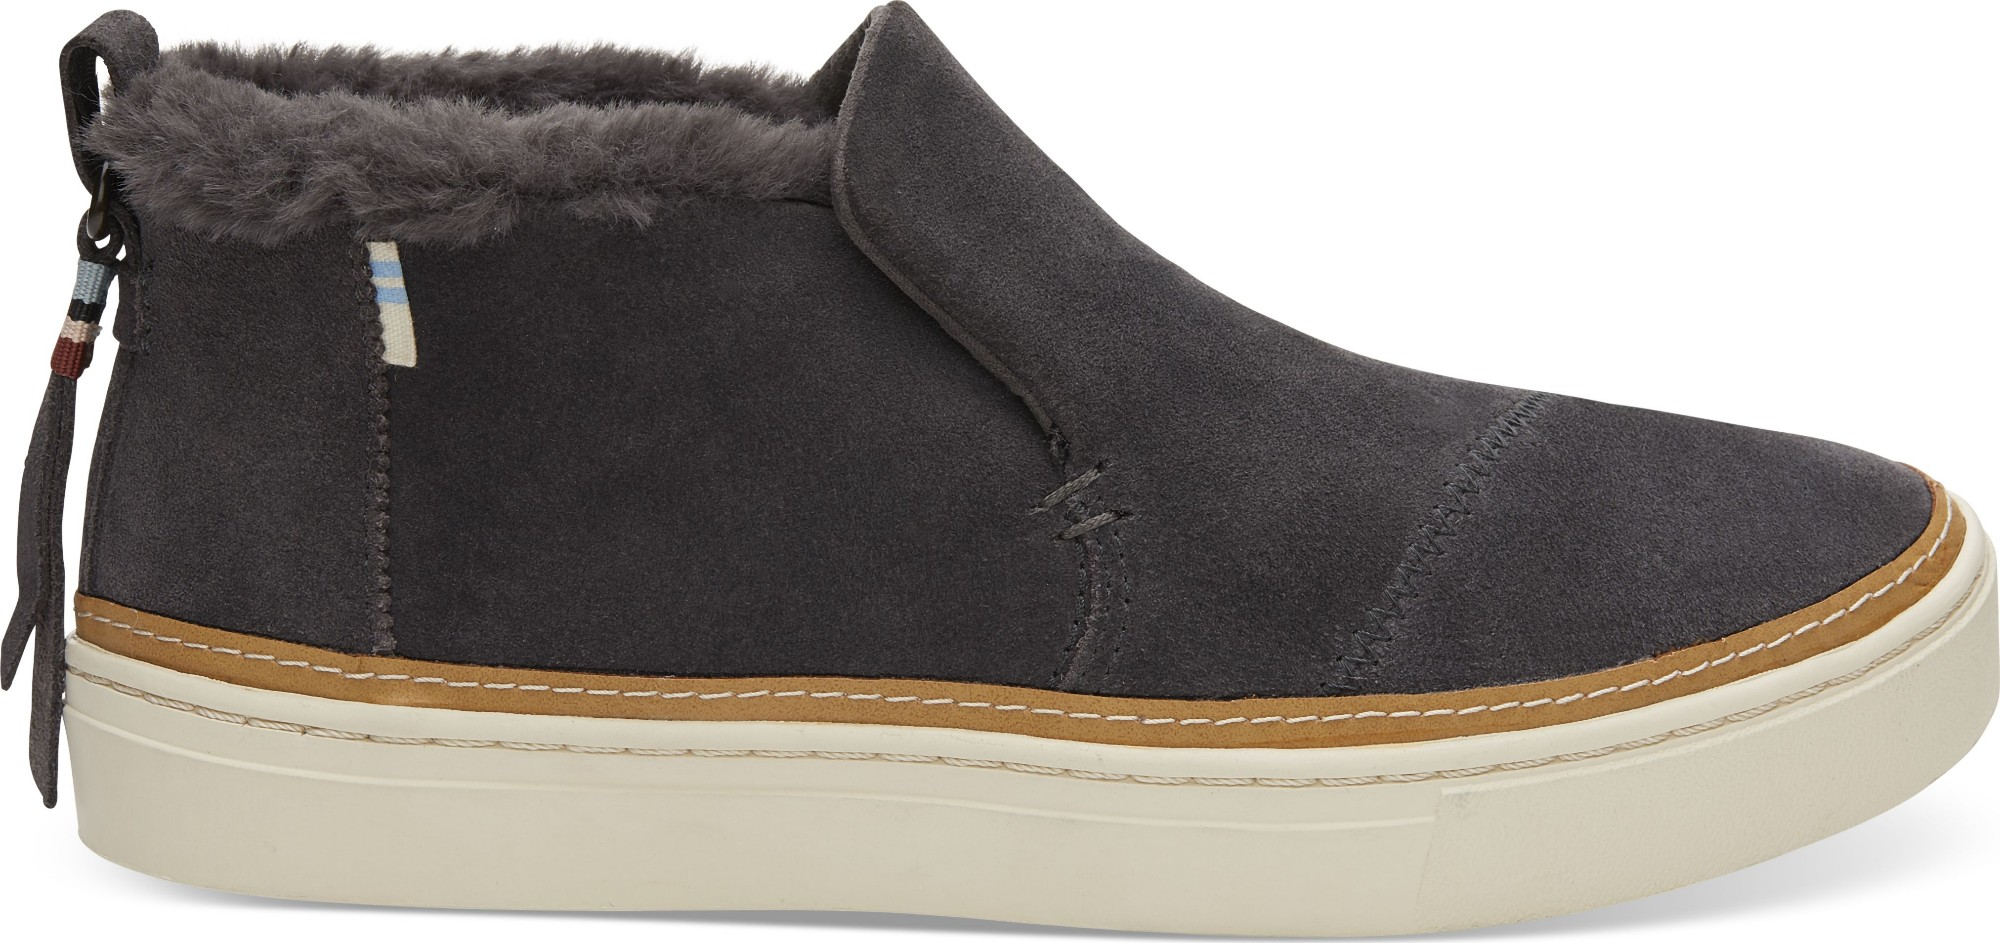 TOMS Suede Faux Fur Women's Paxton Slipon Forged Iron 38,5